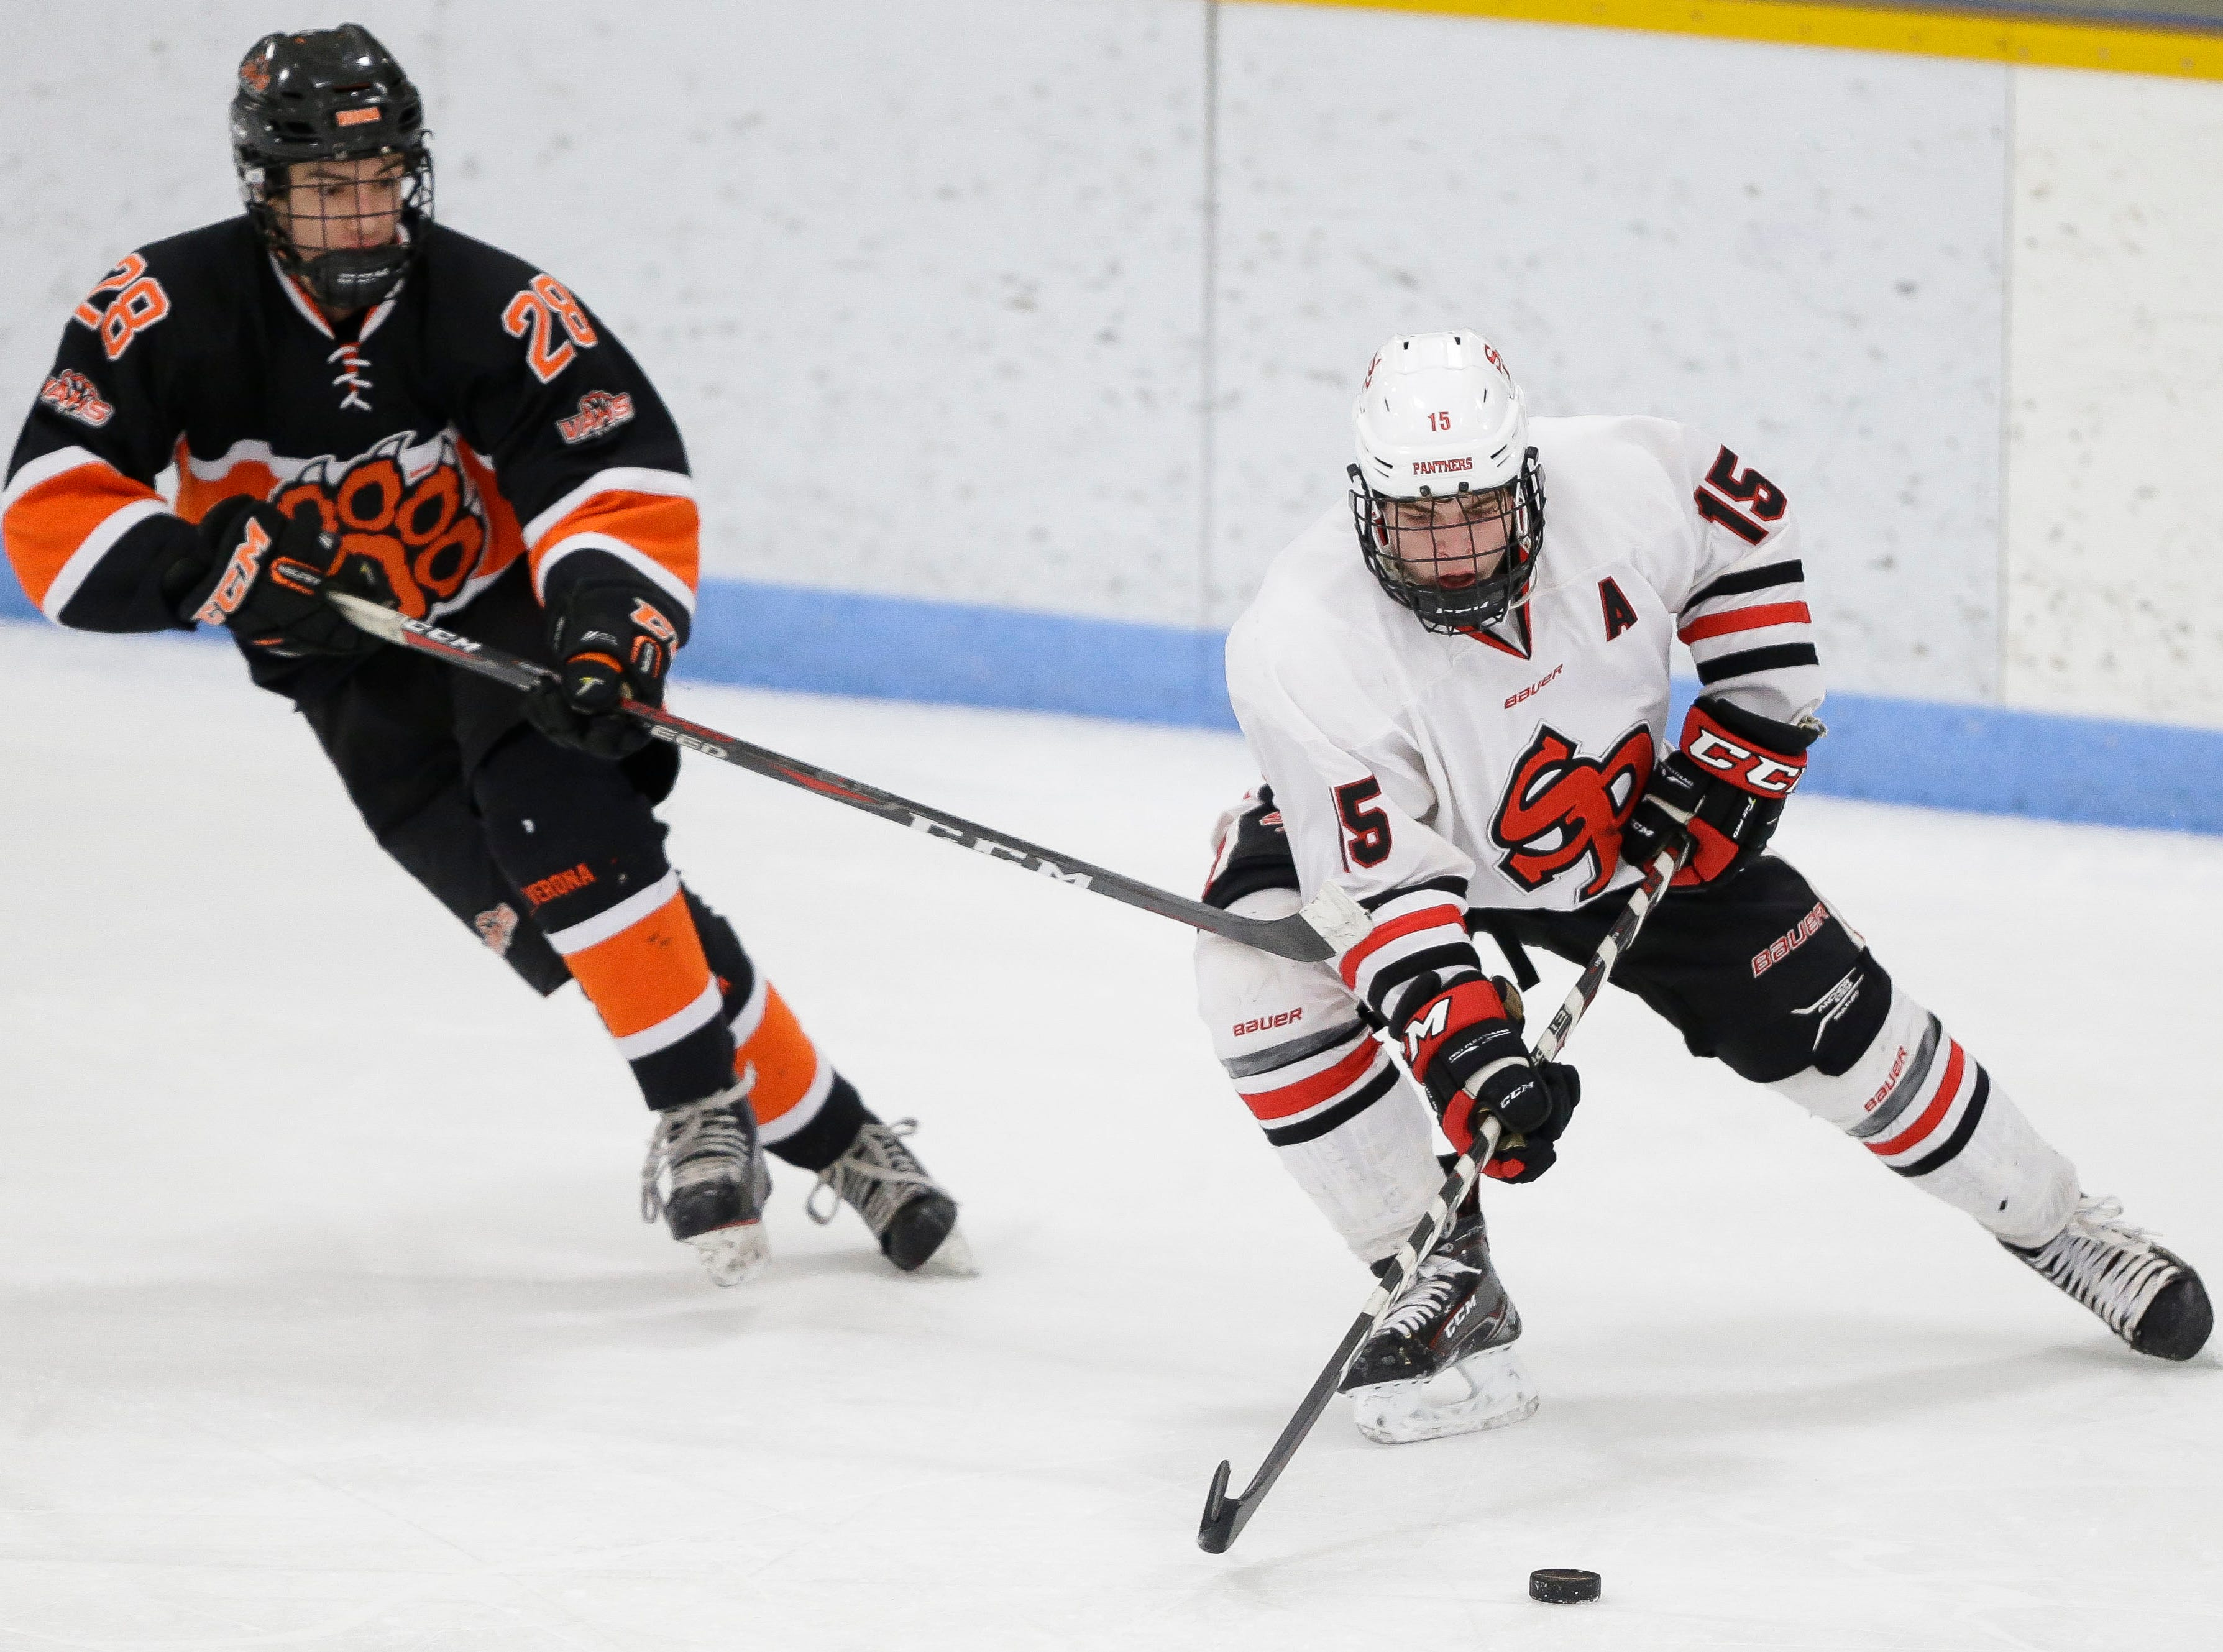 SPASH's Dayne Hoyord (15) handles the puck against Verona on Saturday, January 26, 2019, at K.B. Willett Ice Arena in Stevens Point, Wis. Tork Mason/USA TODAY NETWORK-Wisconsin